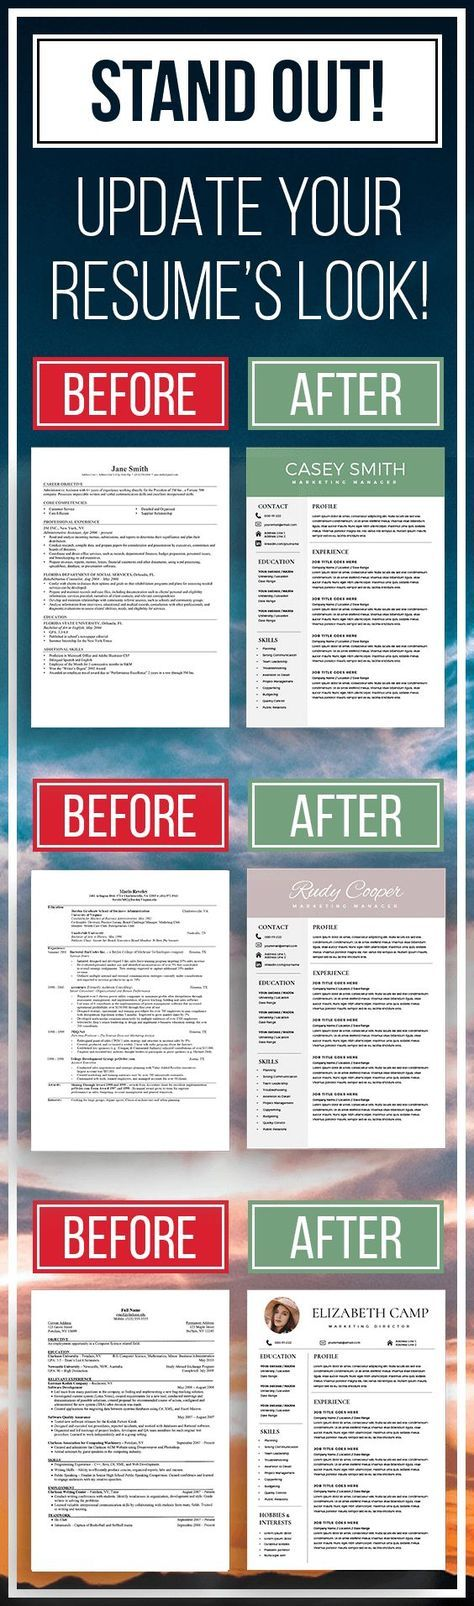 STAND OUT! Updates your resume's look! Modern Resumes